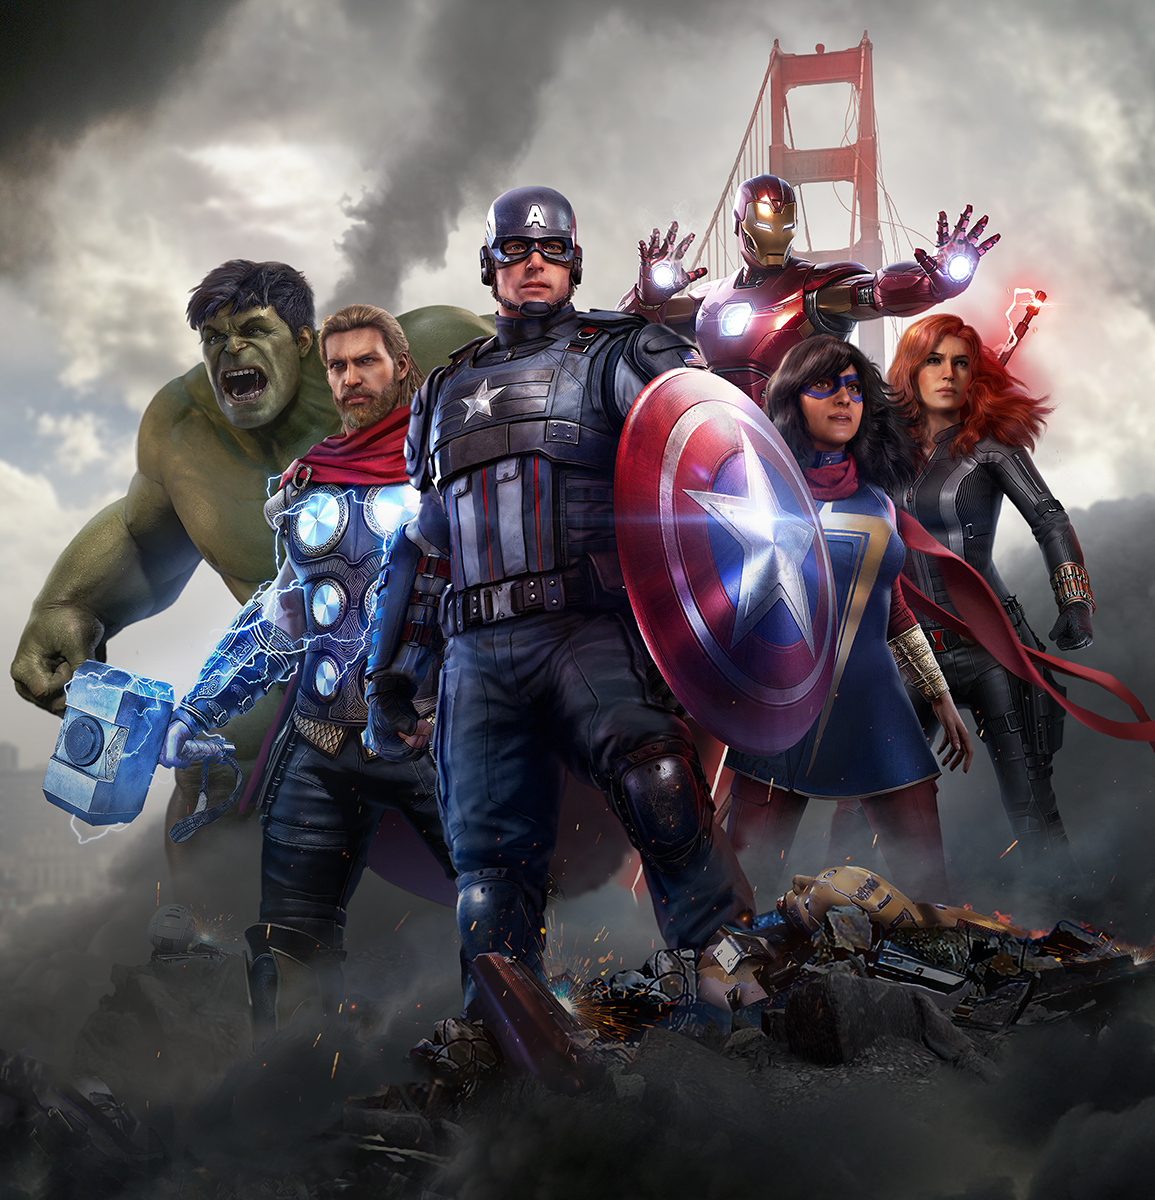 『Marvel's Avengers(アベンジャーズ)』キービジュアル C)2020 MARVEL. Developed by Crystal Dynamics and Eidos Montréal. Development support provided by Nixxes. All rights reserved.